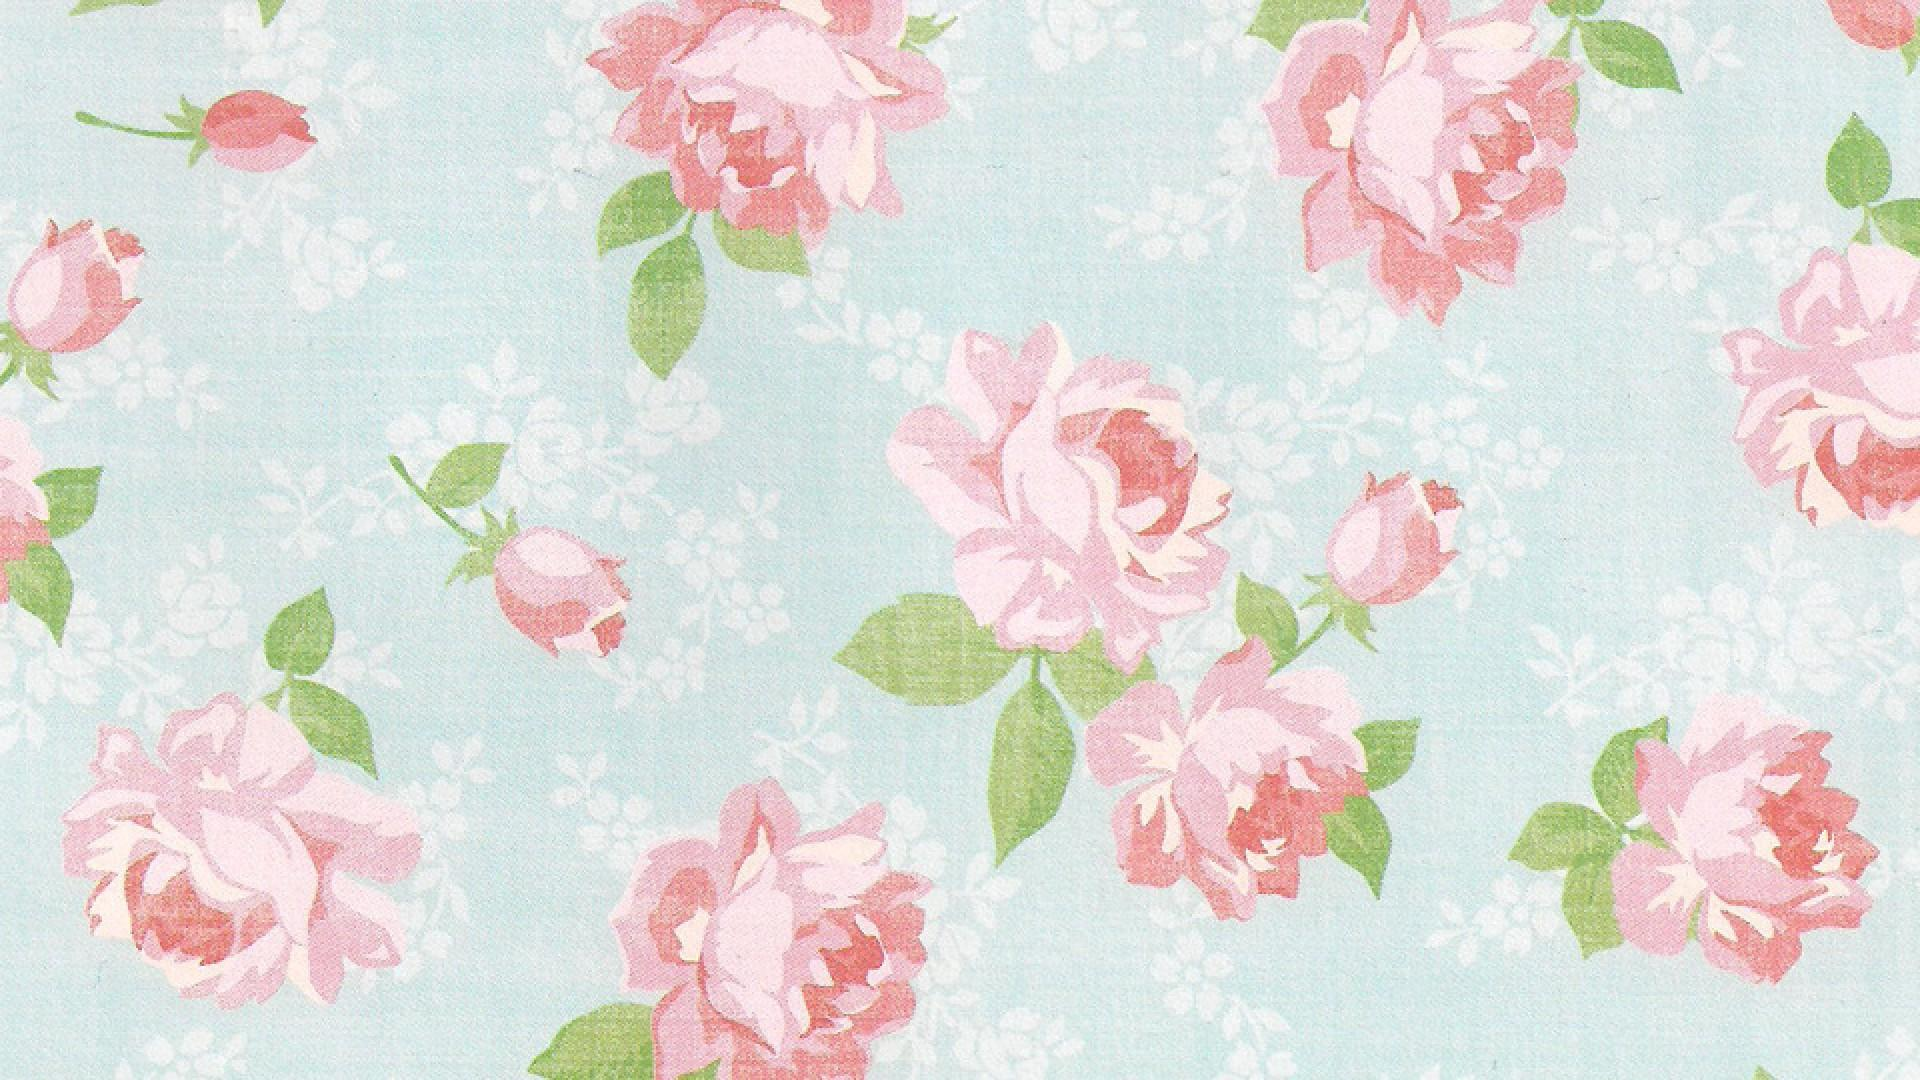 Download Wallpaper Backgrounds Vintage Floral 297364 Hd Wallpaper Backgrounds Download